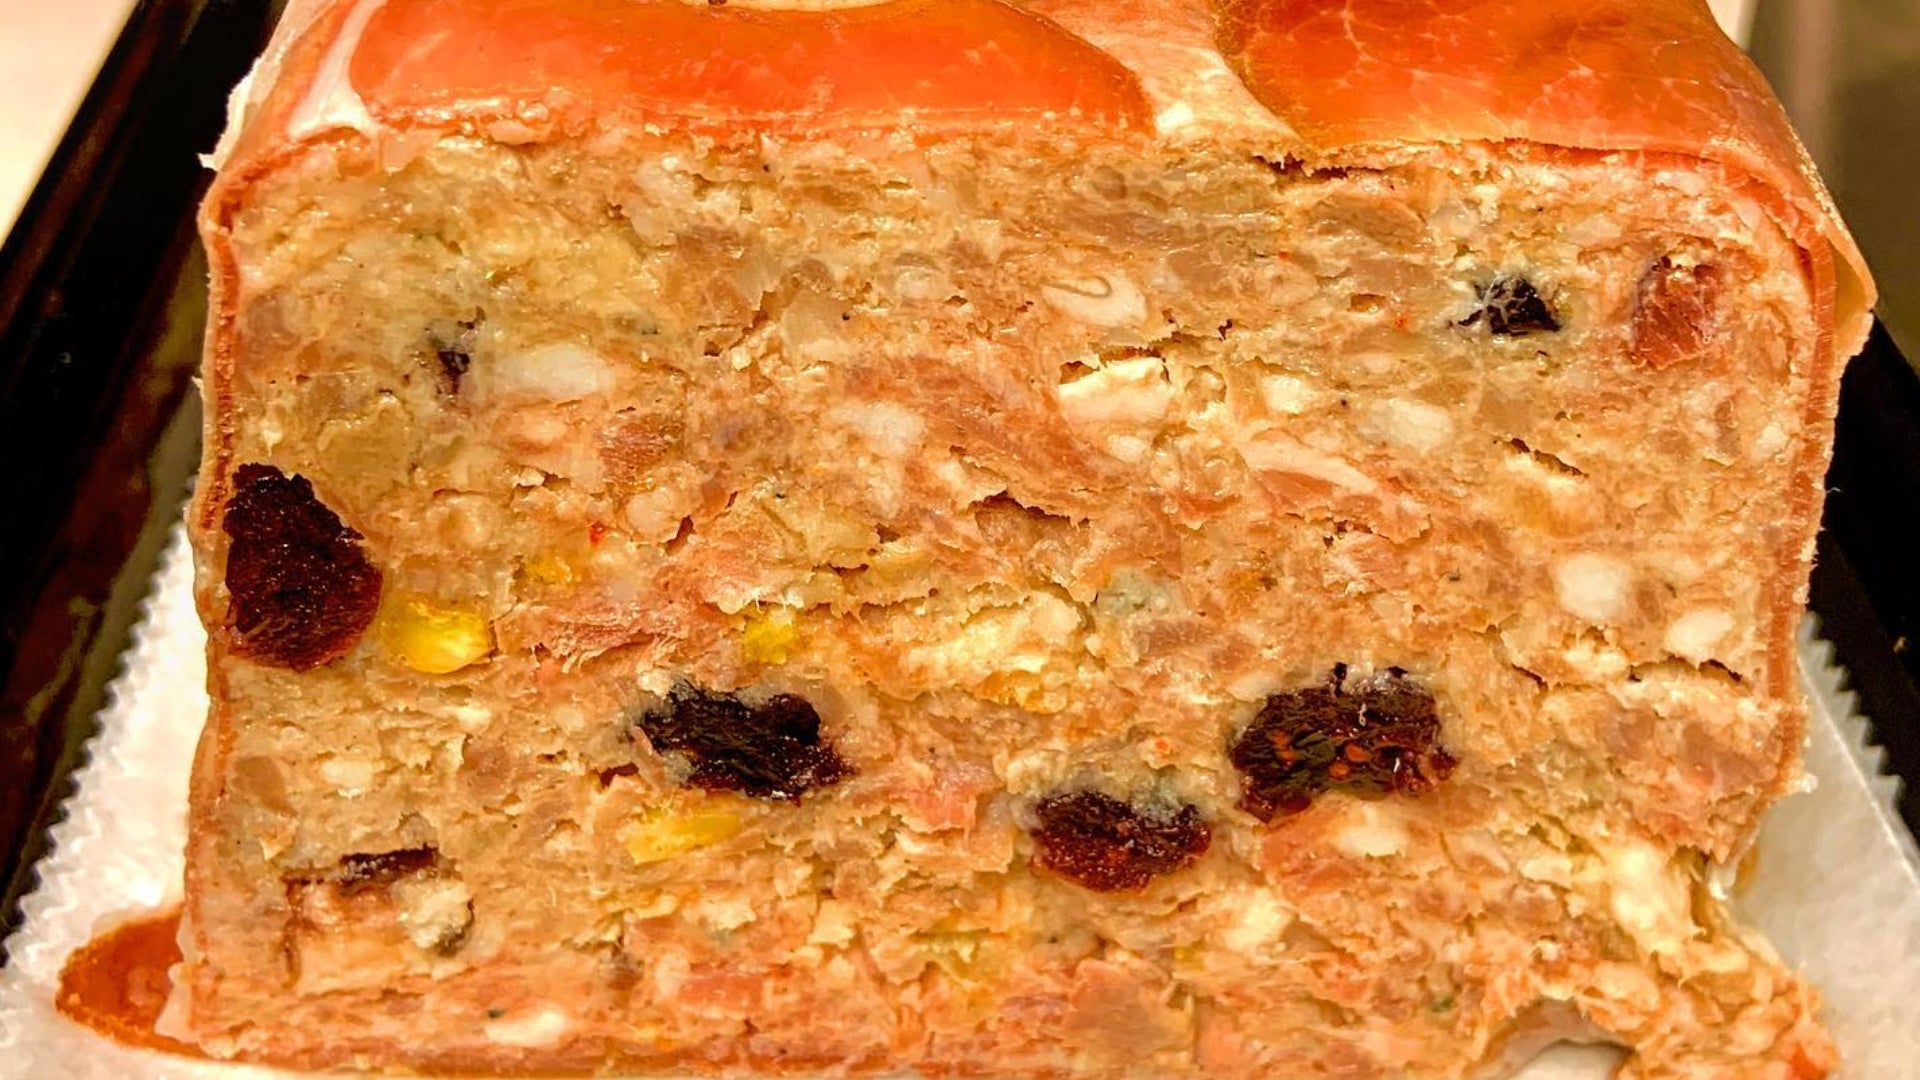 An up close picture of the cross section of country pâté to show the detail of the meat dish.